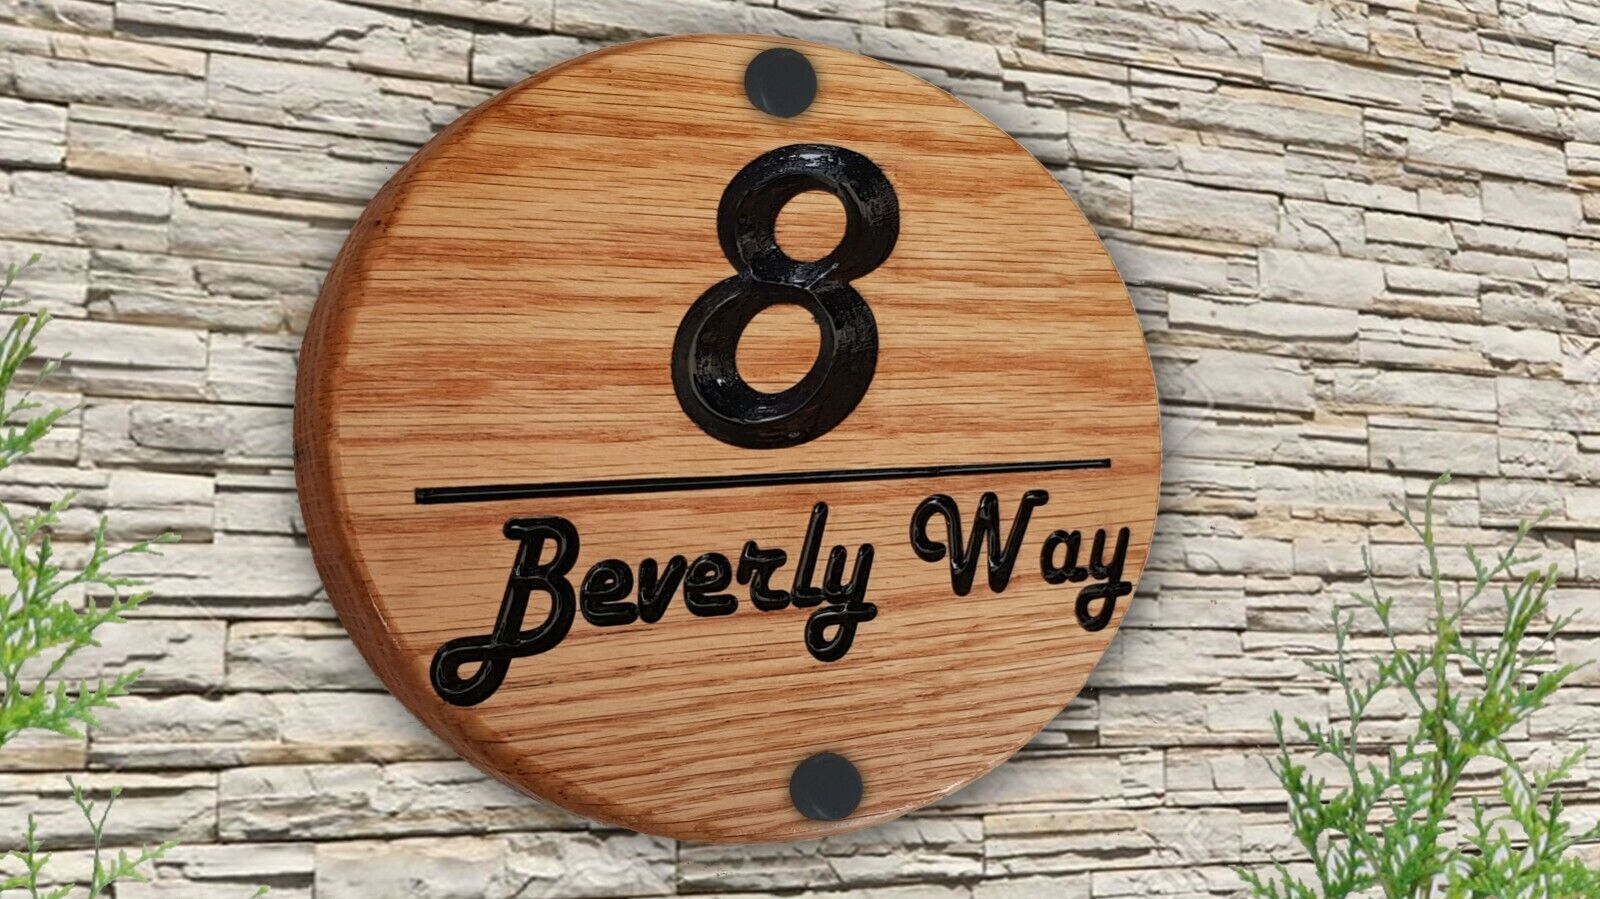 Personalised Carved Engraved Wooden House Number Name Sign Address Plaque